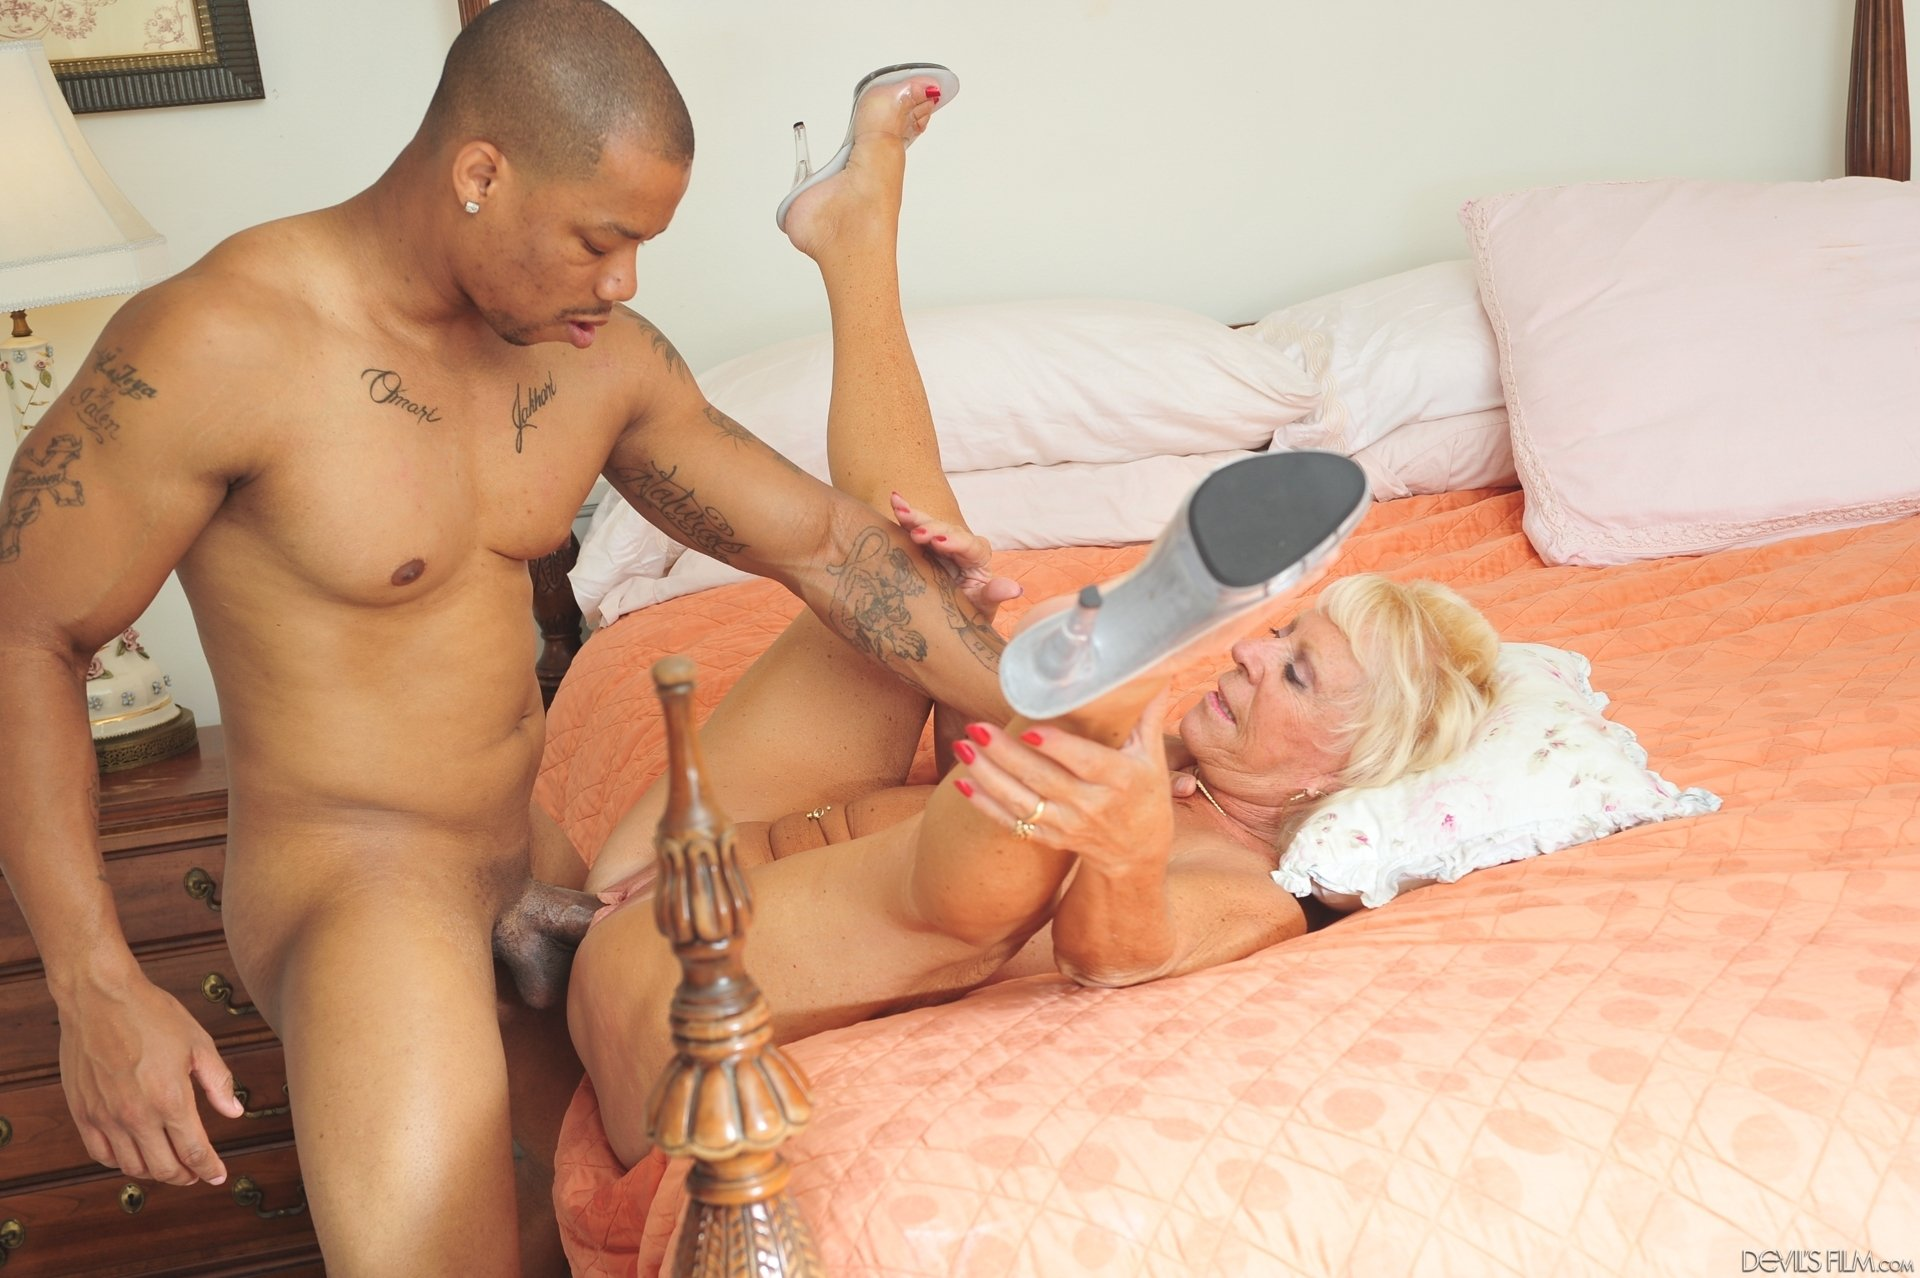 Porn sleeping drunk violence granny and grandpa nude